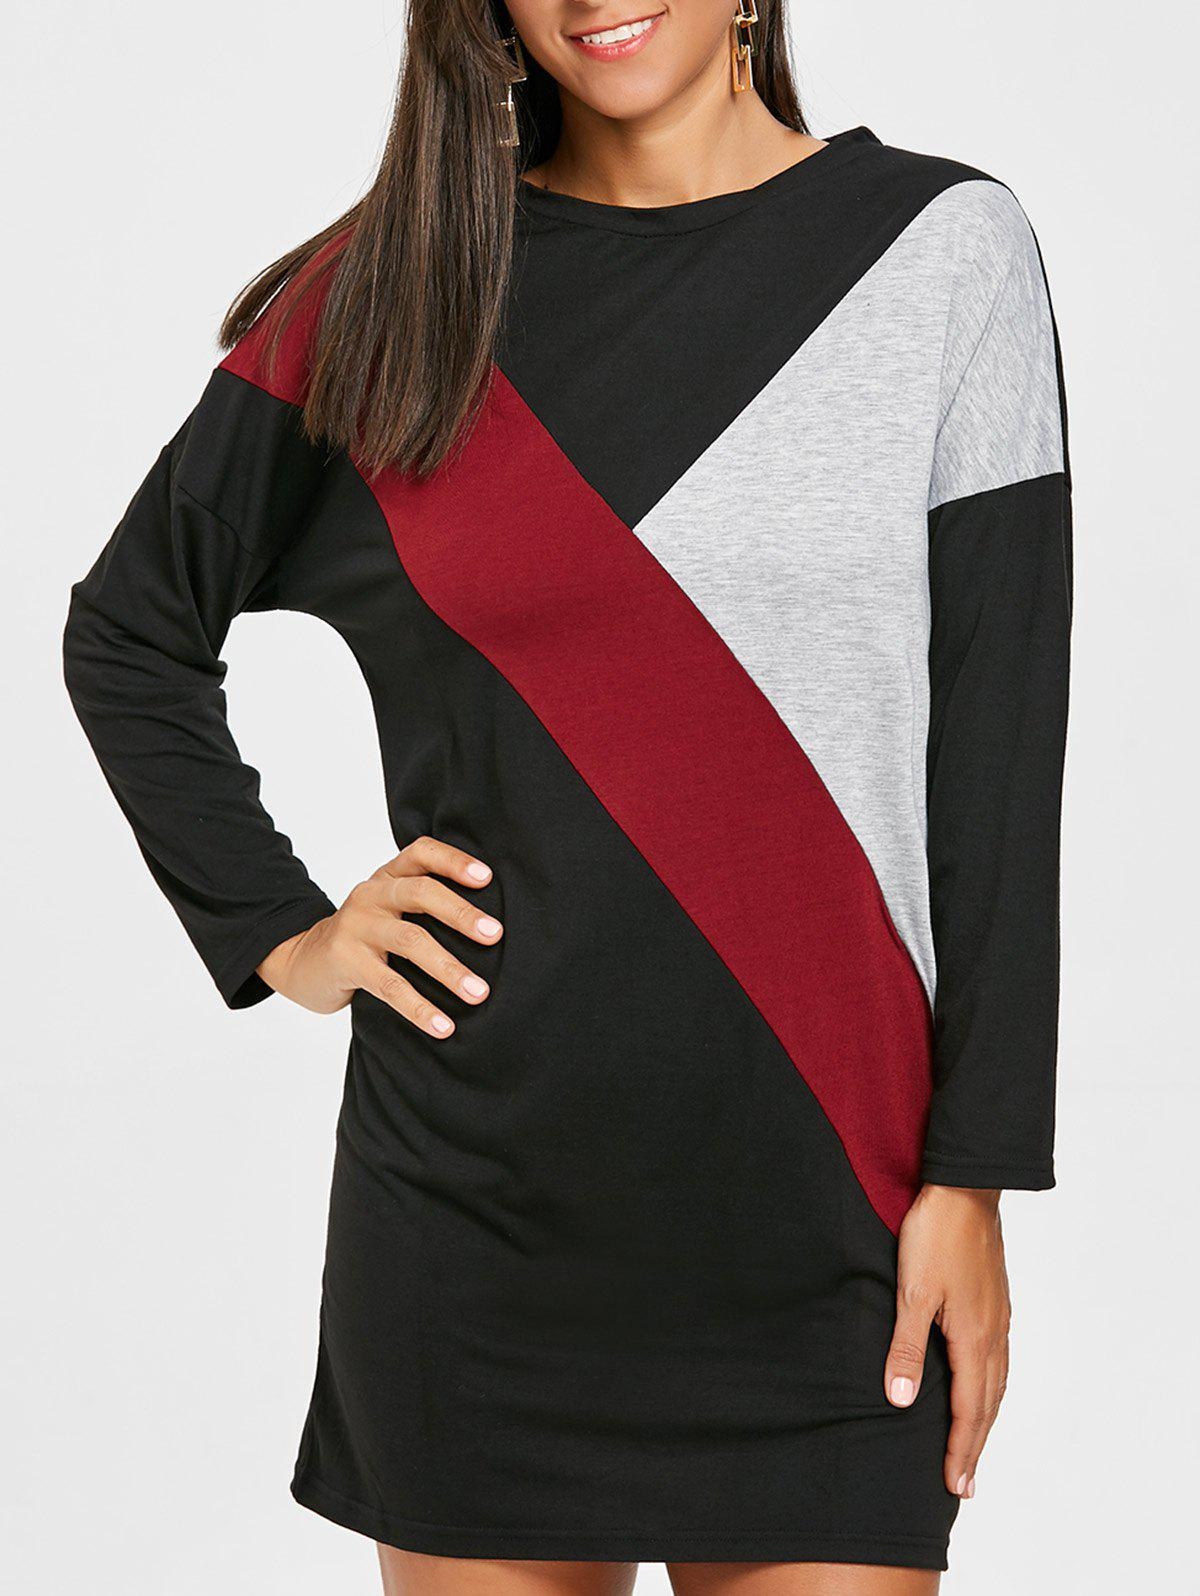 Long Sleeve Color Block Mini T-shirt Dress - BLACK XL